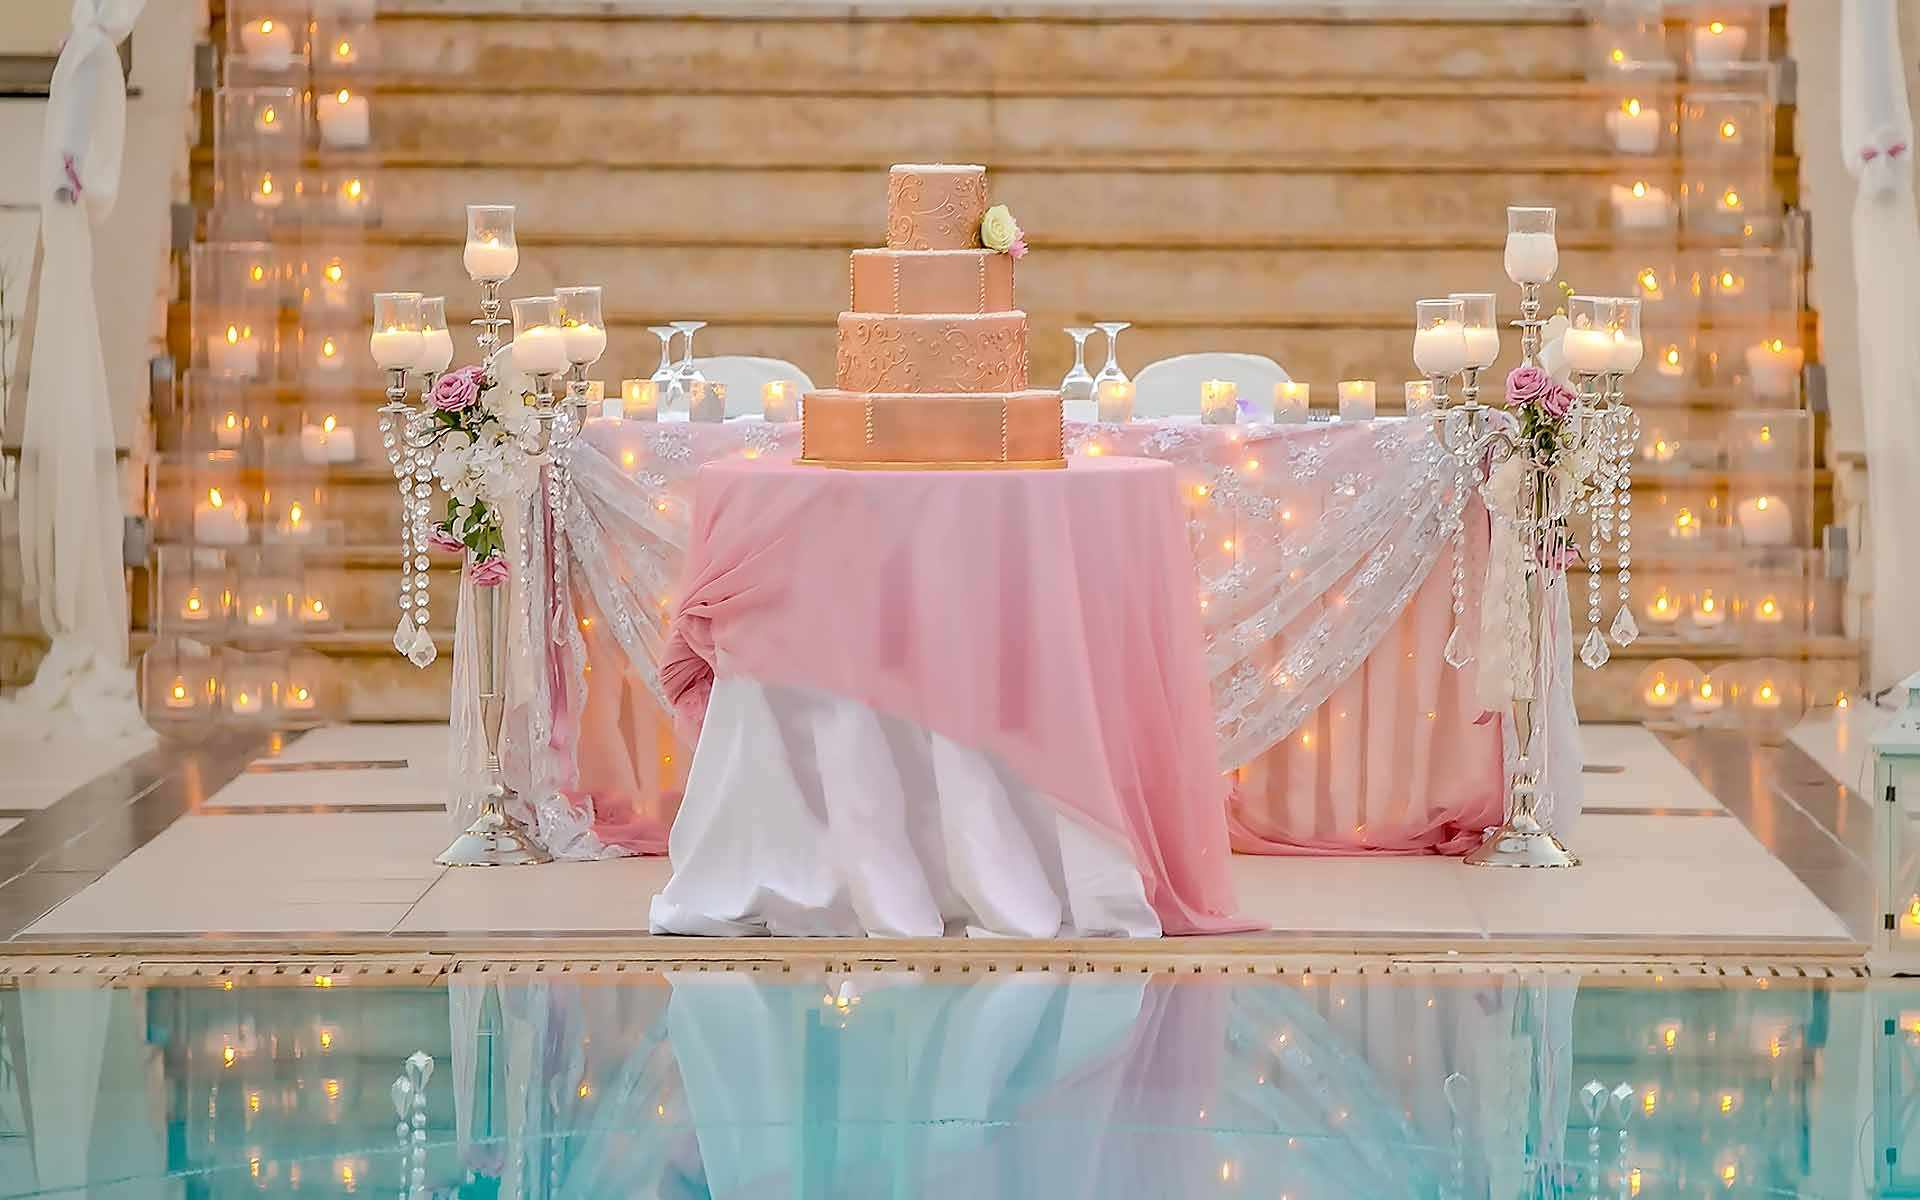 Golden-Wedding-Cake-Set-Up-In-Front-Of-The-Bridal-Table-by-Diamond-Events-Wedding-Event